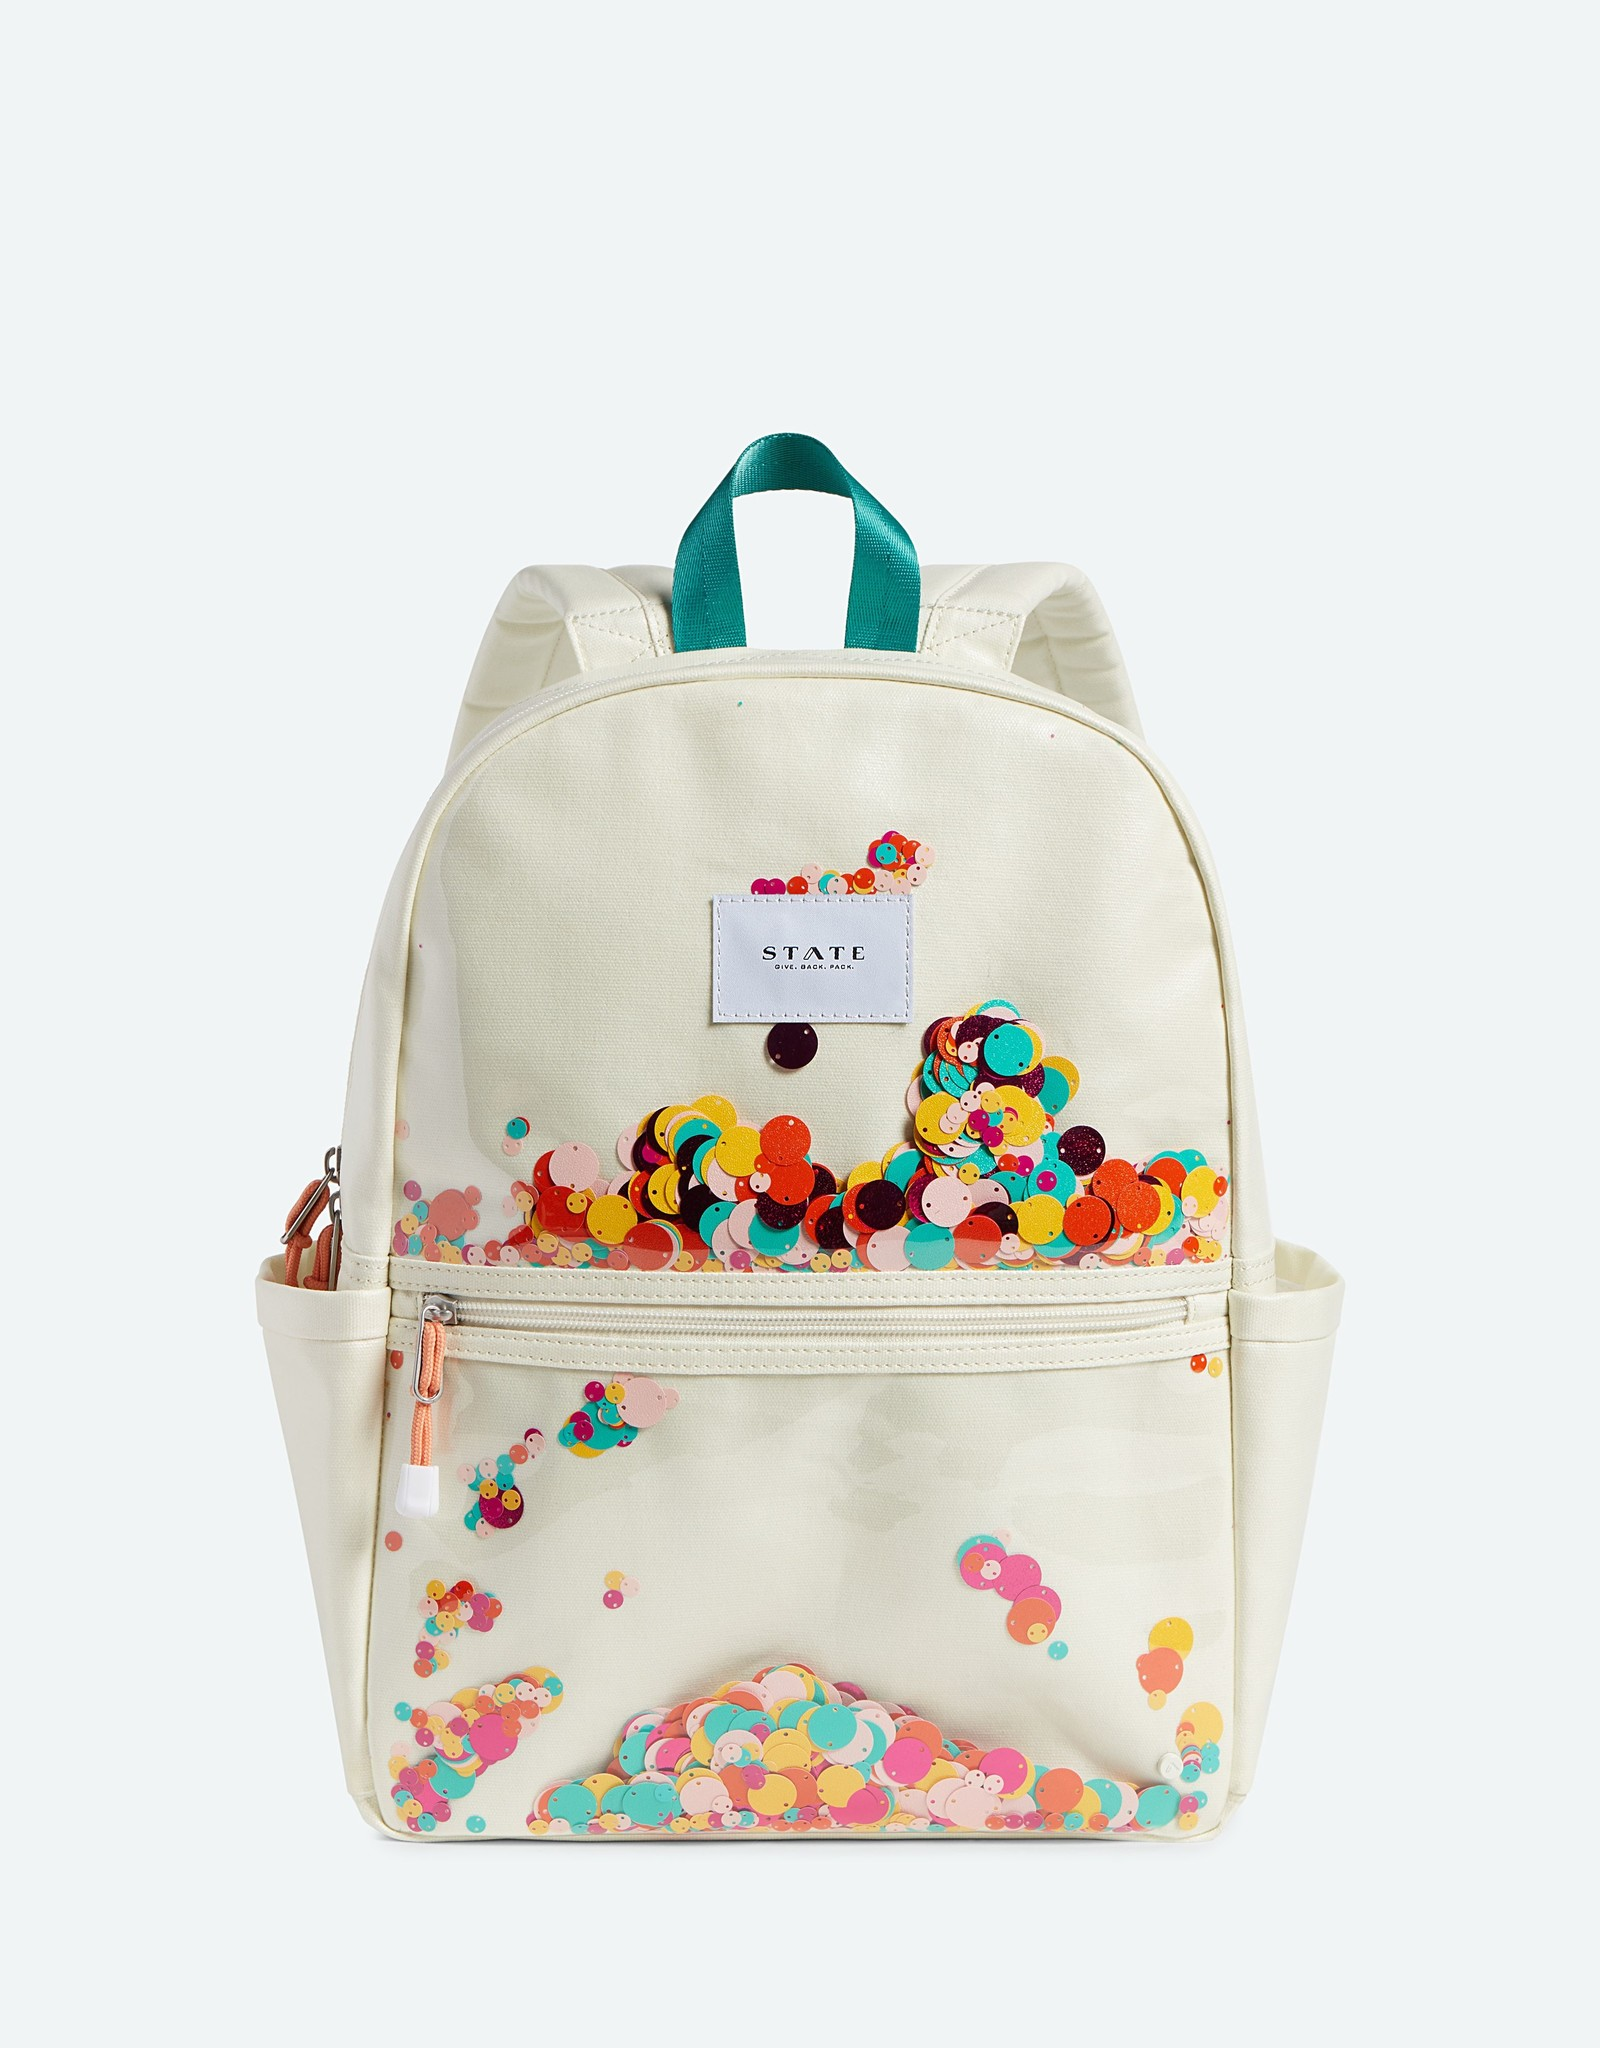 State Bags kane rainbow sequins (pre-order)